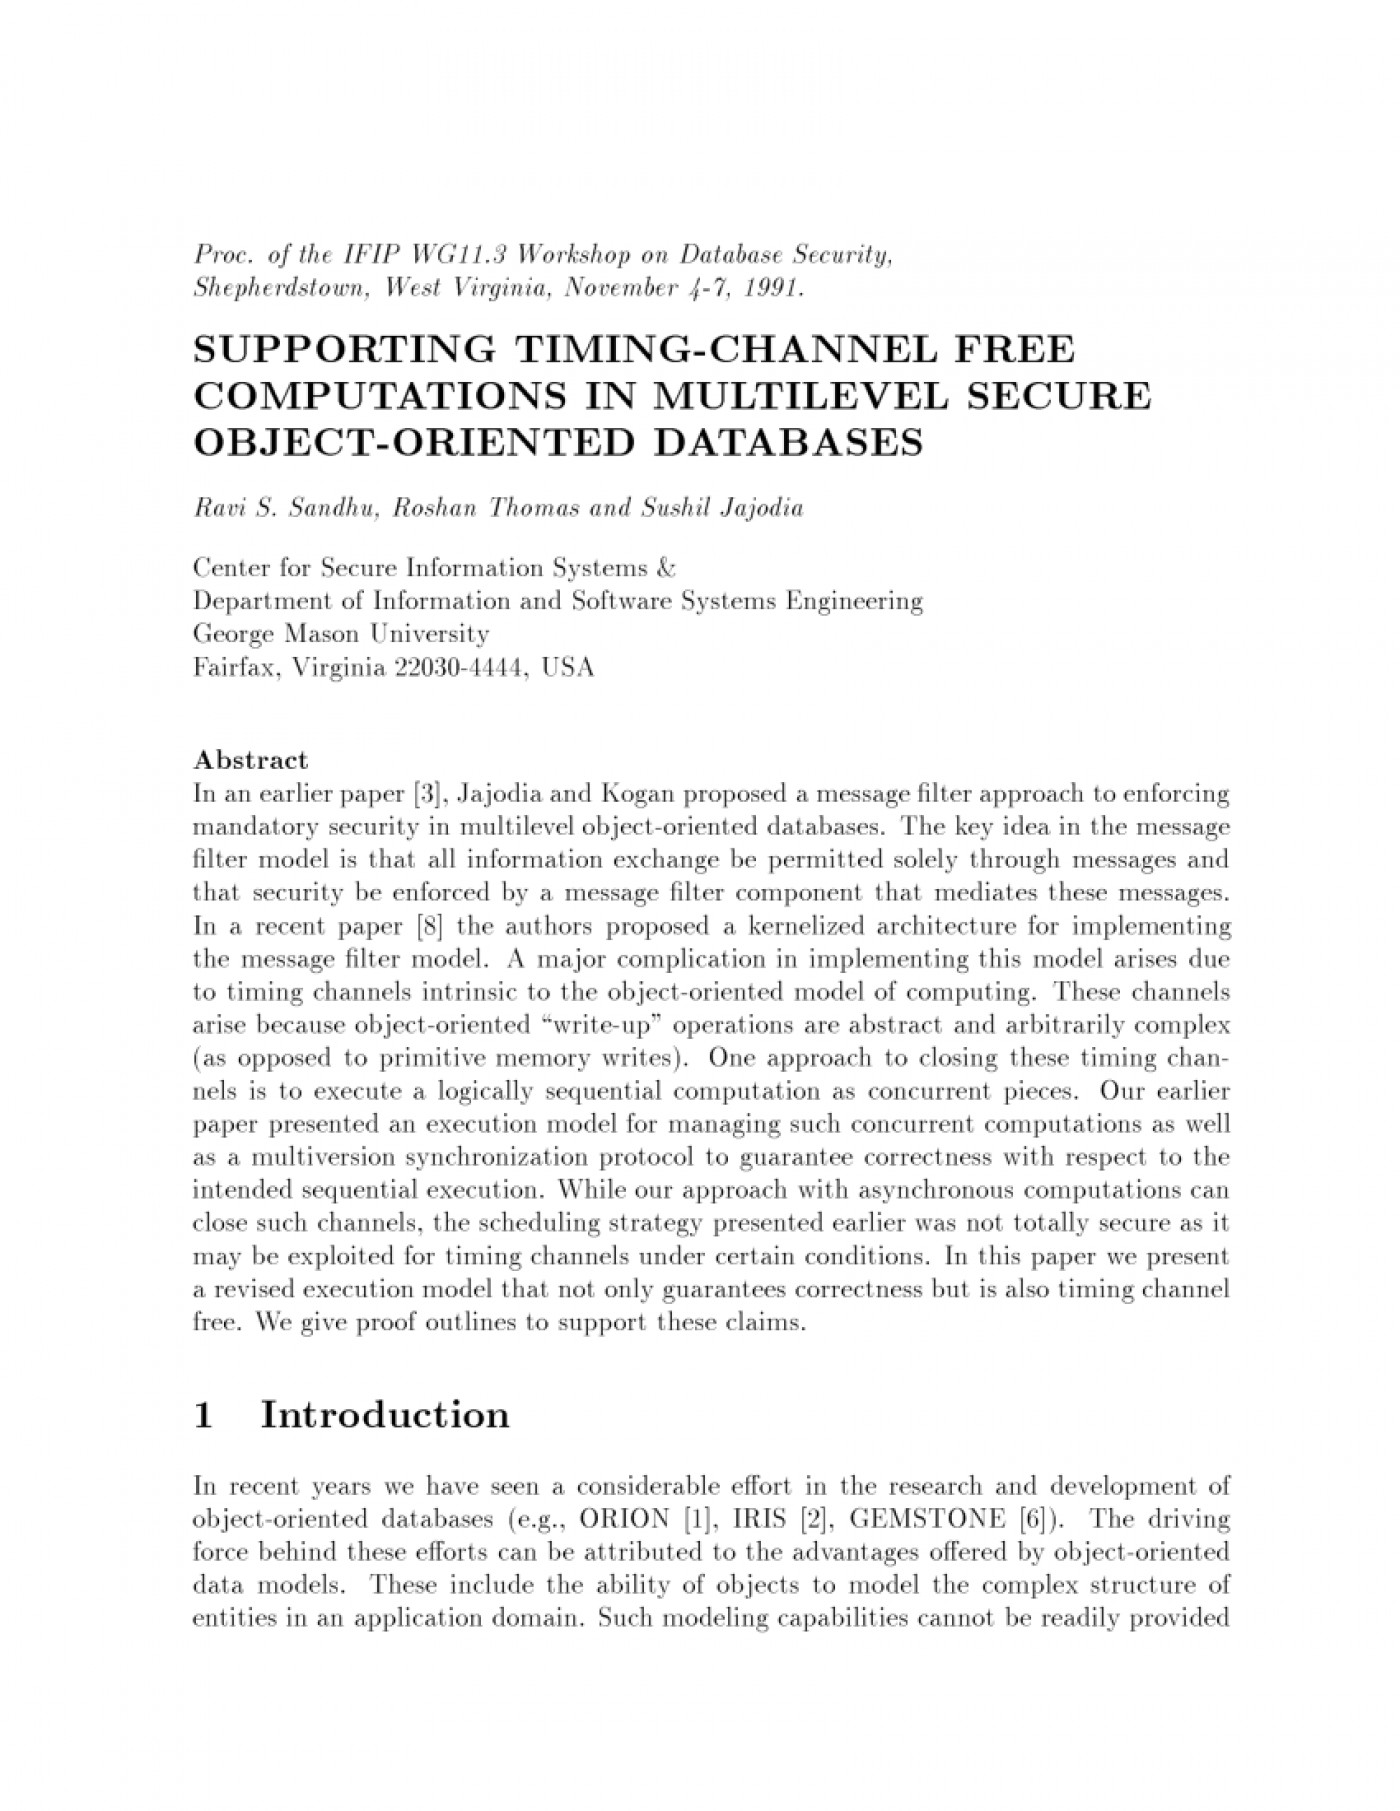 013 Research Paper Database Security Recent Papers Dreaded Pdf 1400